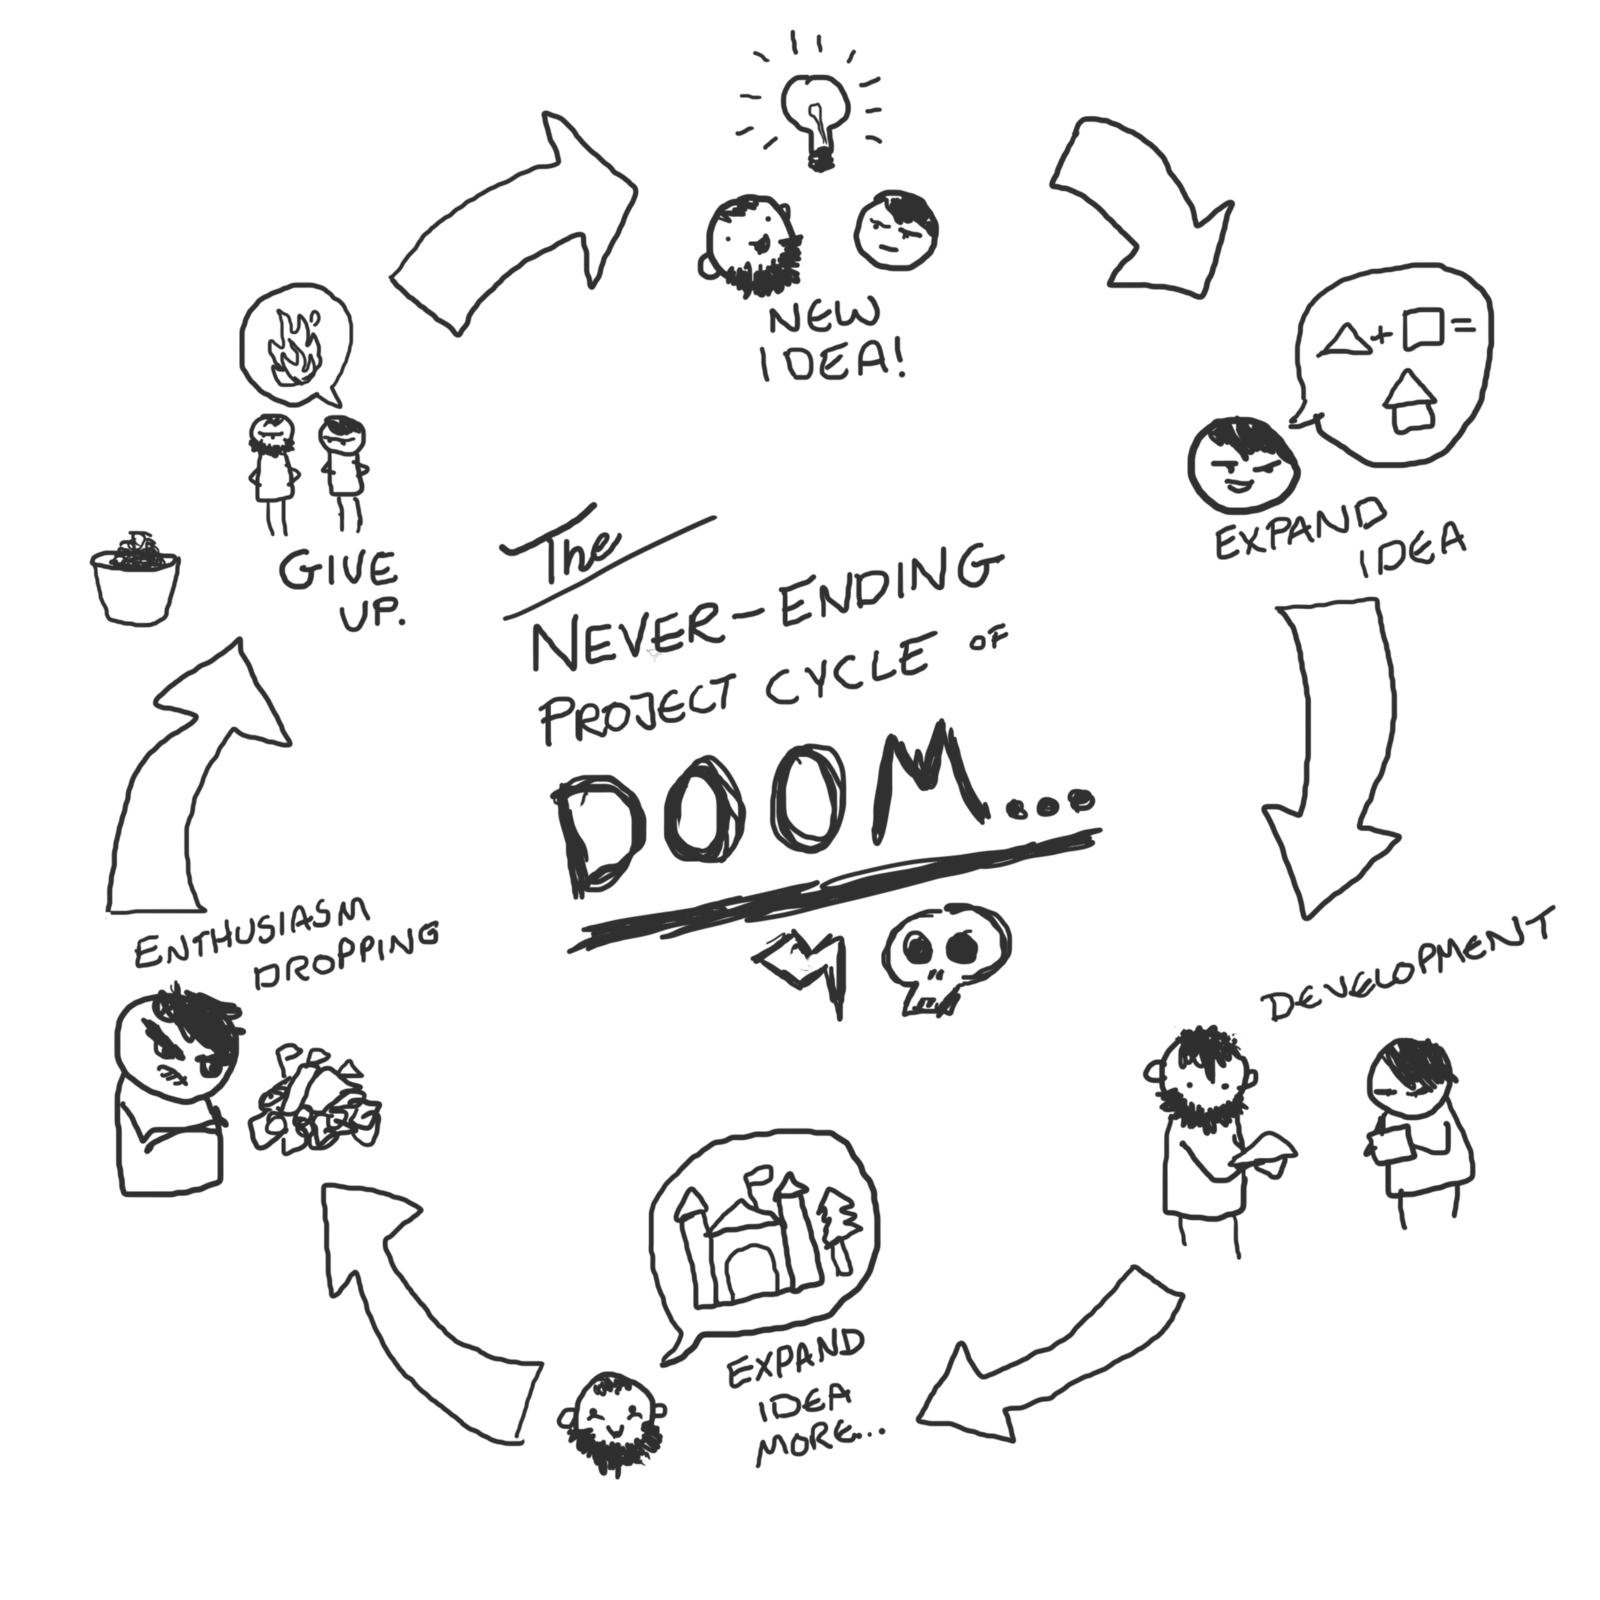 The Never Ending Project Cycle Of Doom